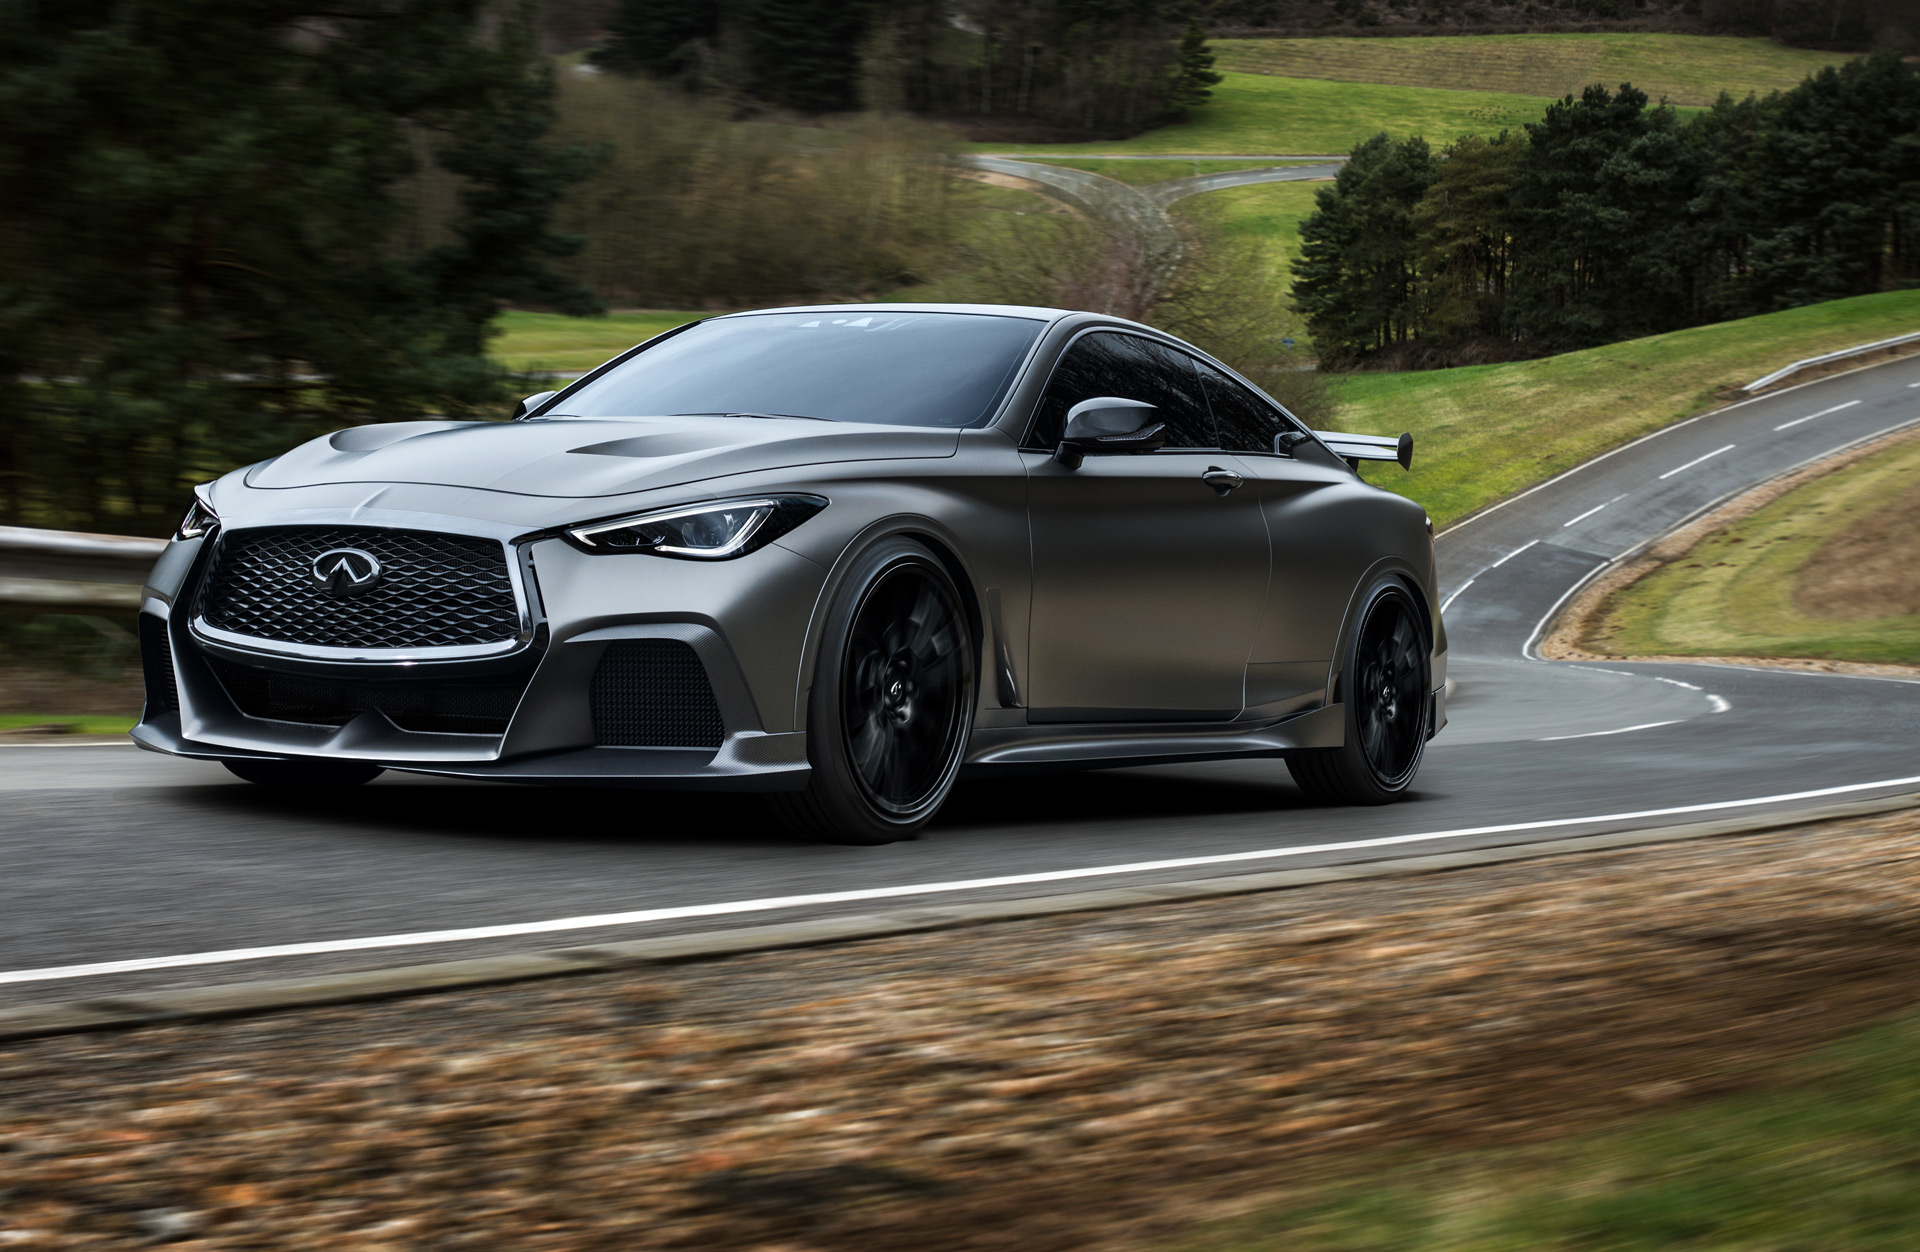 50 The 2020 Infiniti Q50 Coupe Eau Rouge Exterior